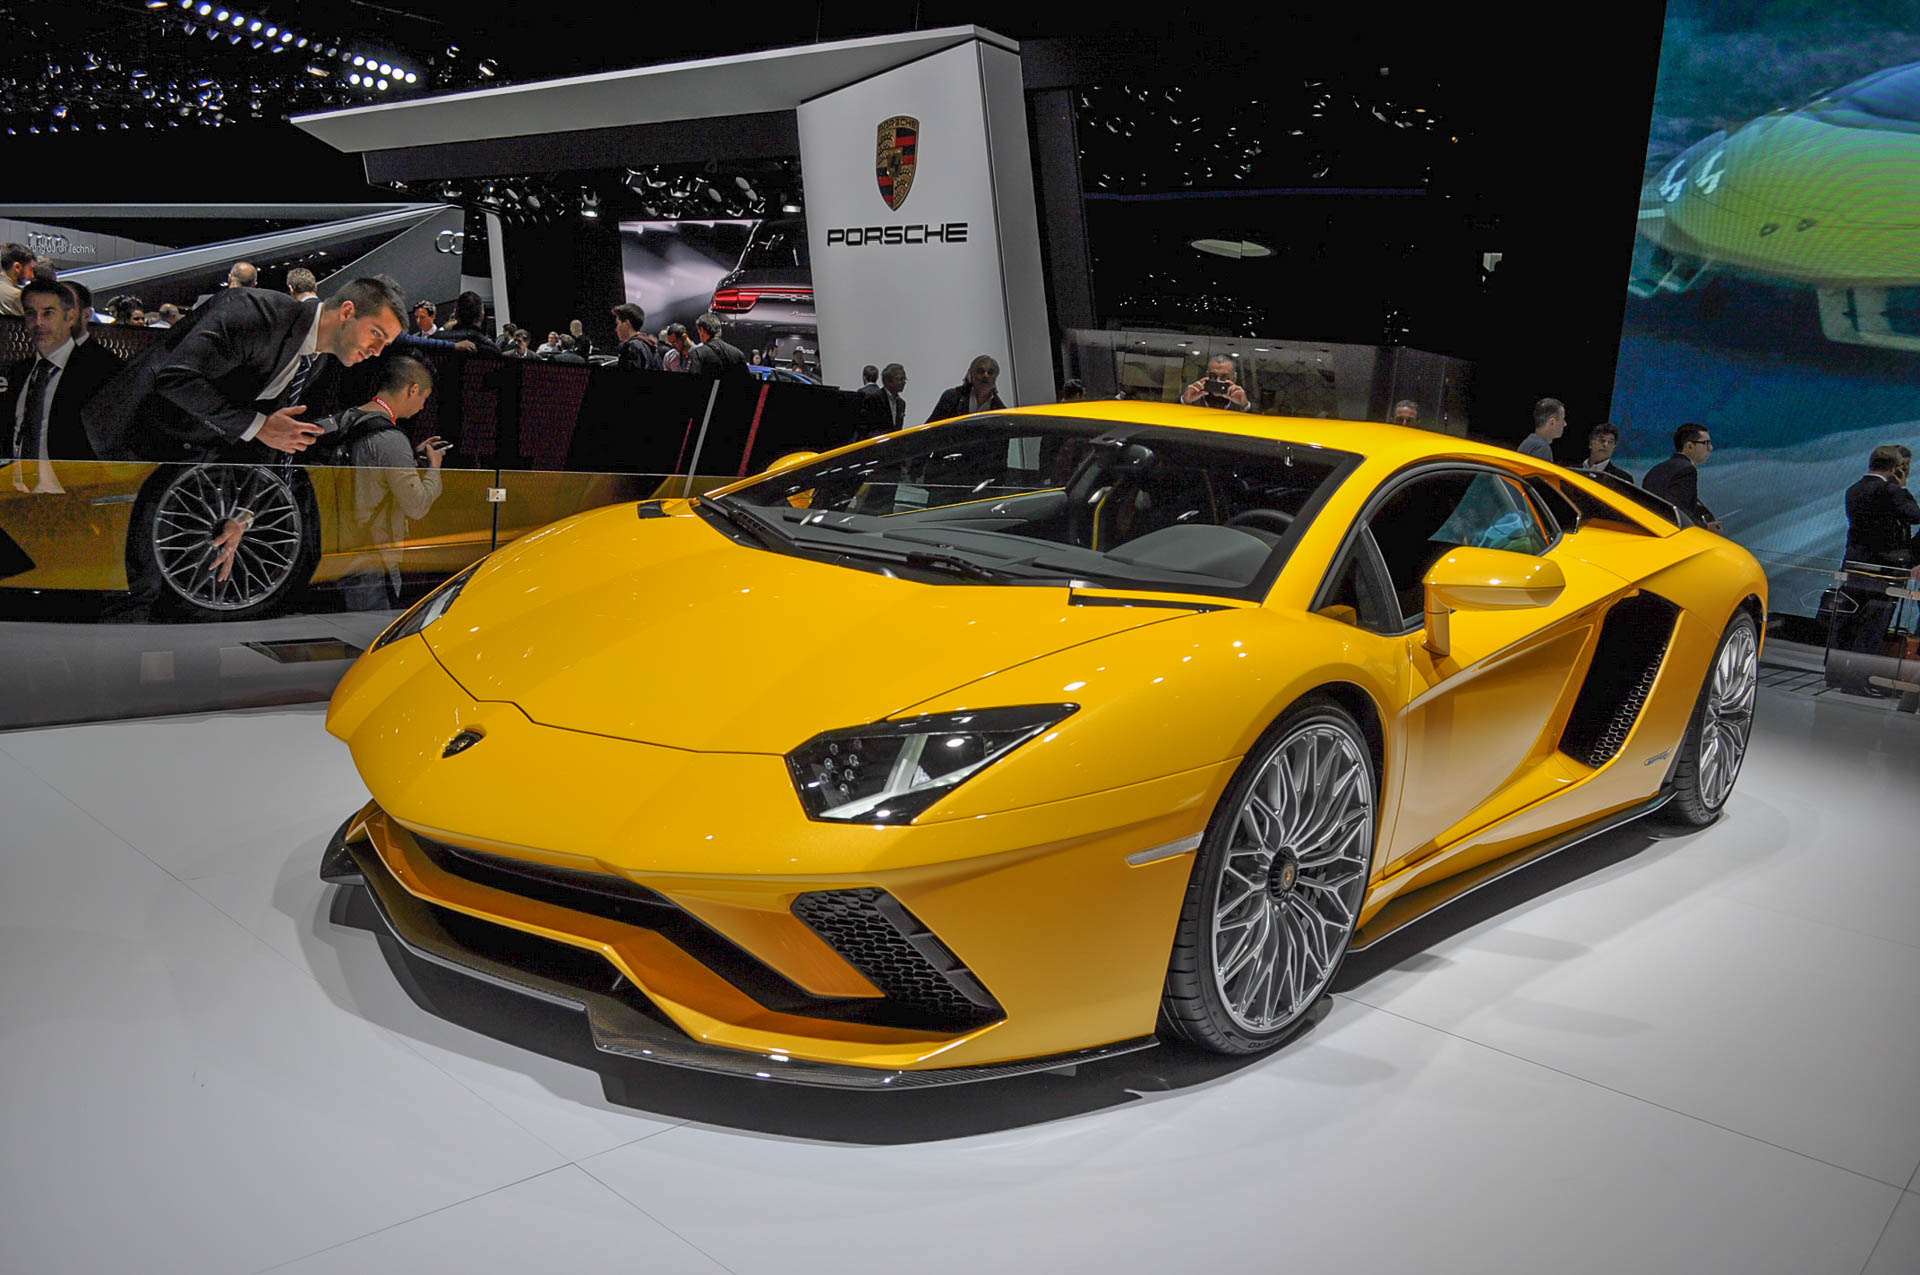 lamborghini aventador s revealed with 730 horsepower. Black Bedroom Furniture Sets. Home Design Ideas